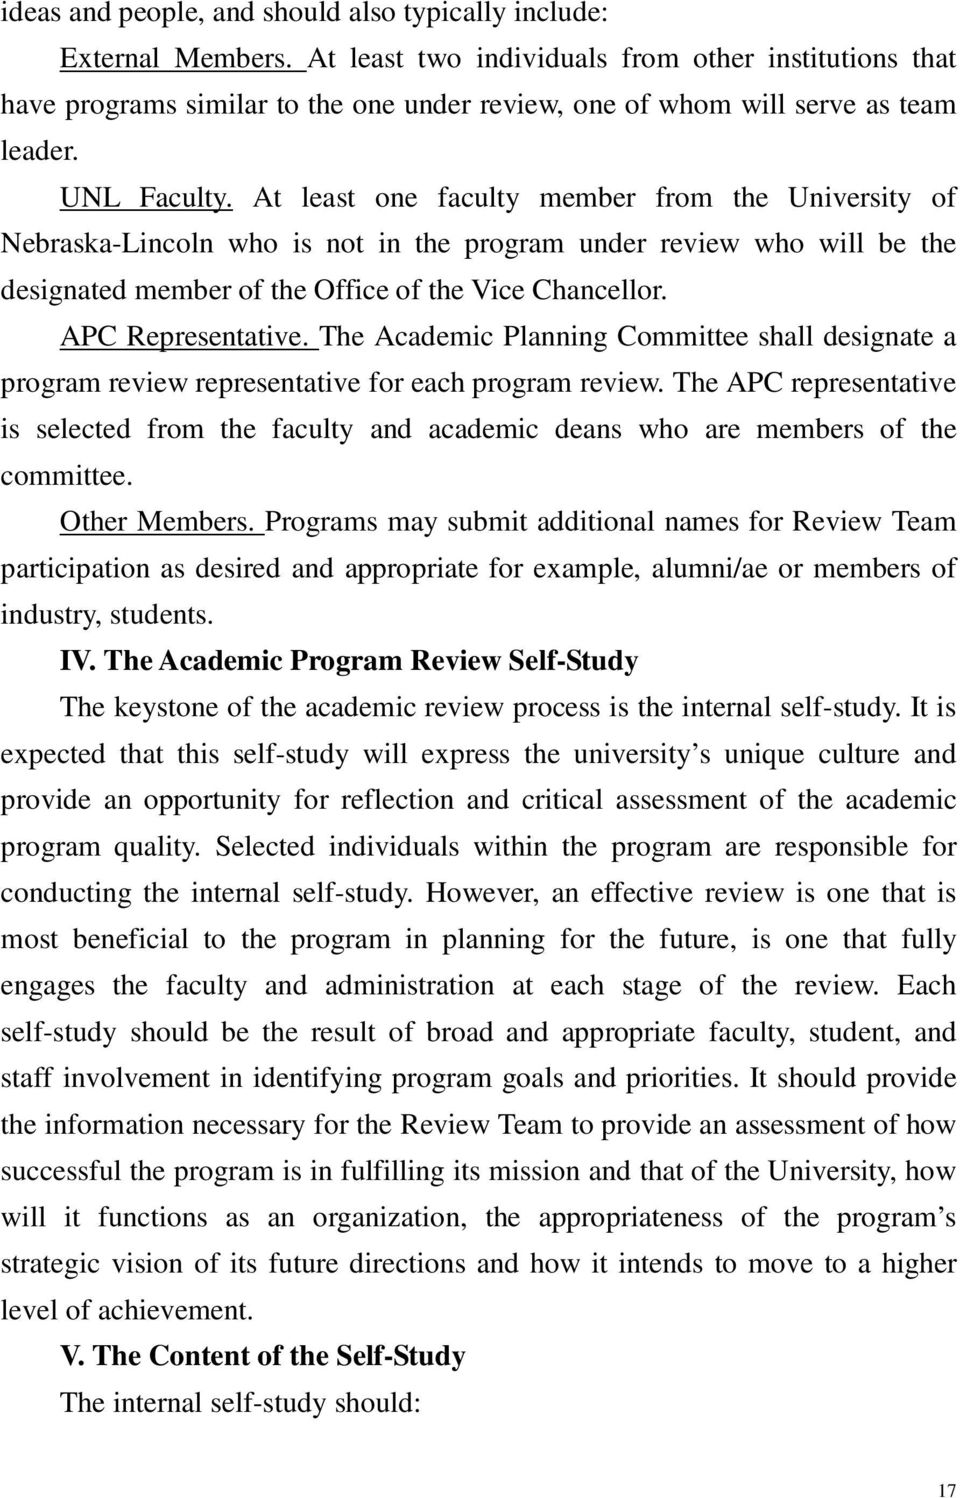 At least one faculty member from the University of Nebraska-Lincoln who is not in the program under review who will be the designated member of the Office of the Vice Chancellor. APC Representative.